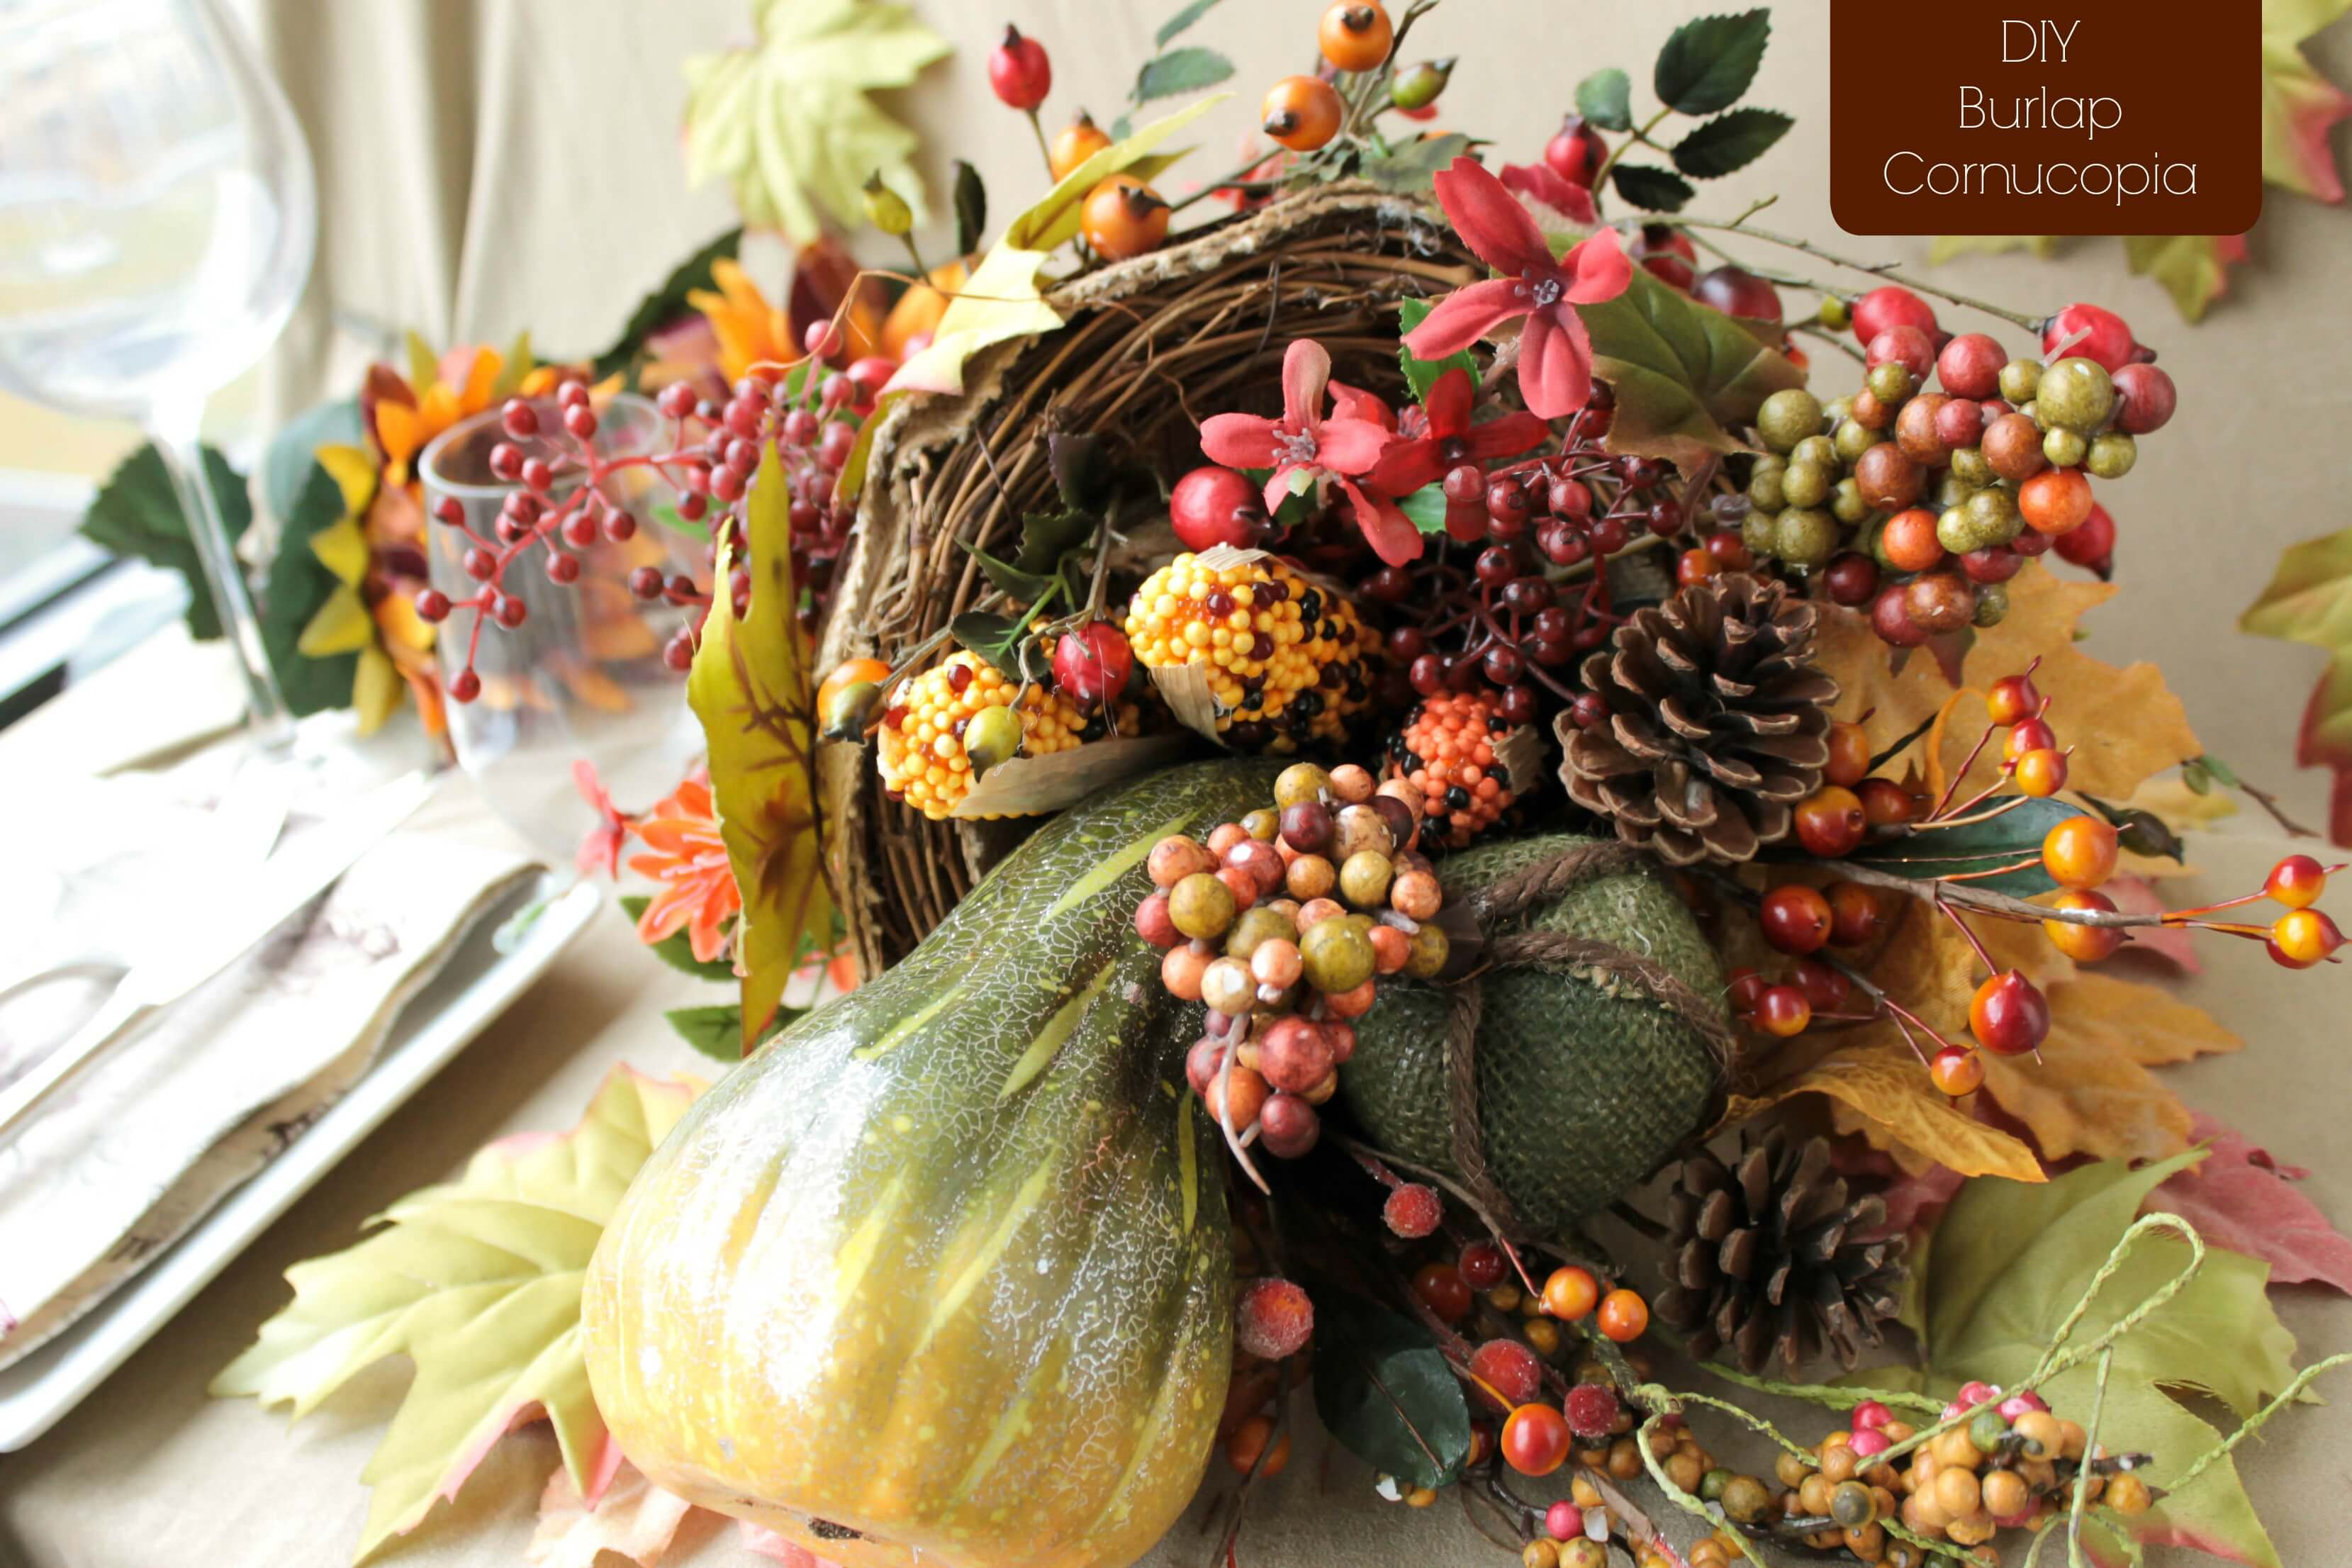 A Few Easy Steps to Make This Lovely Fall Burlap Cornucopia